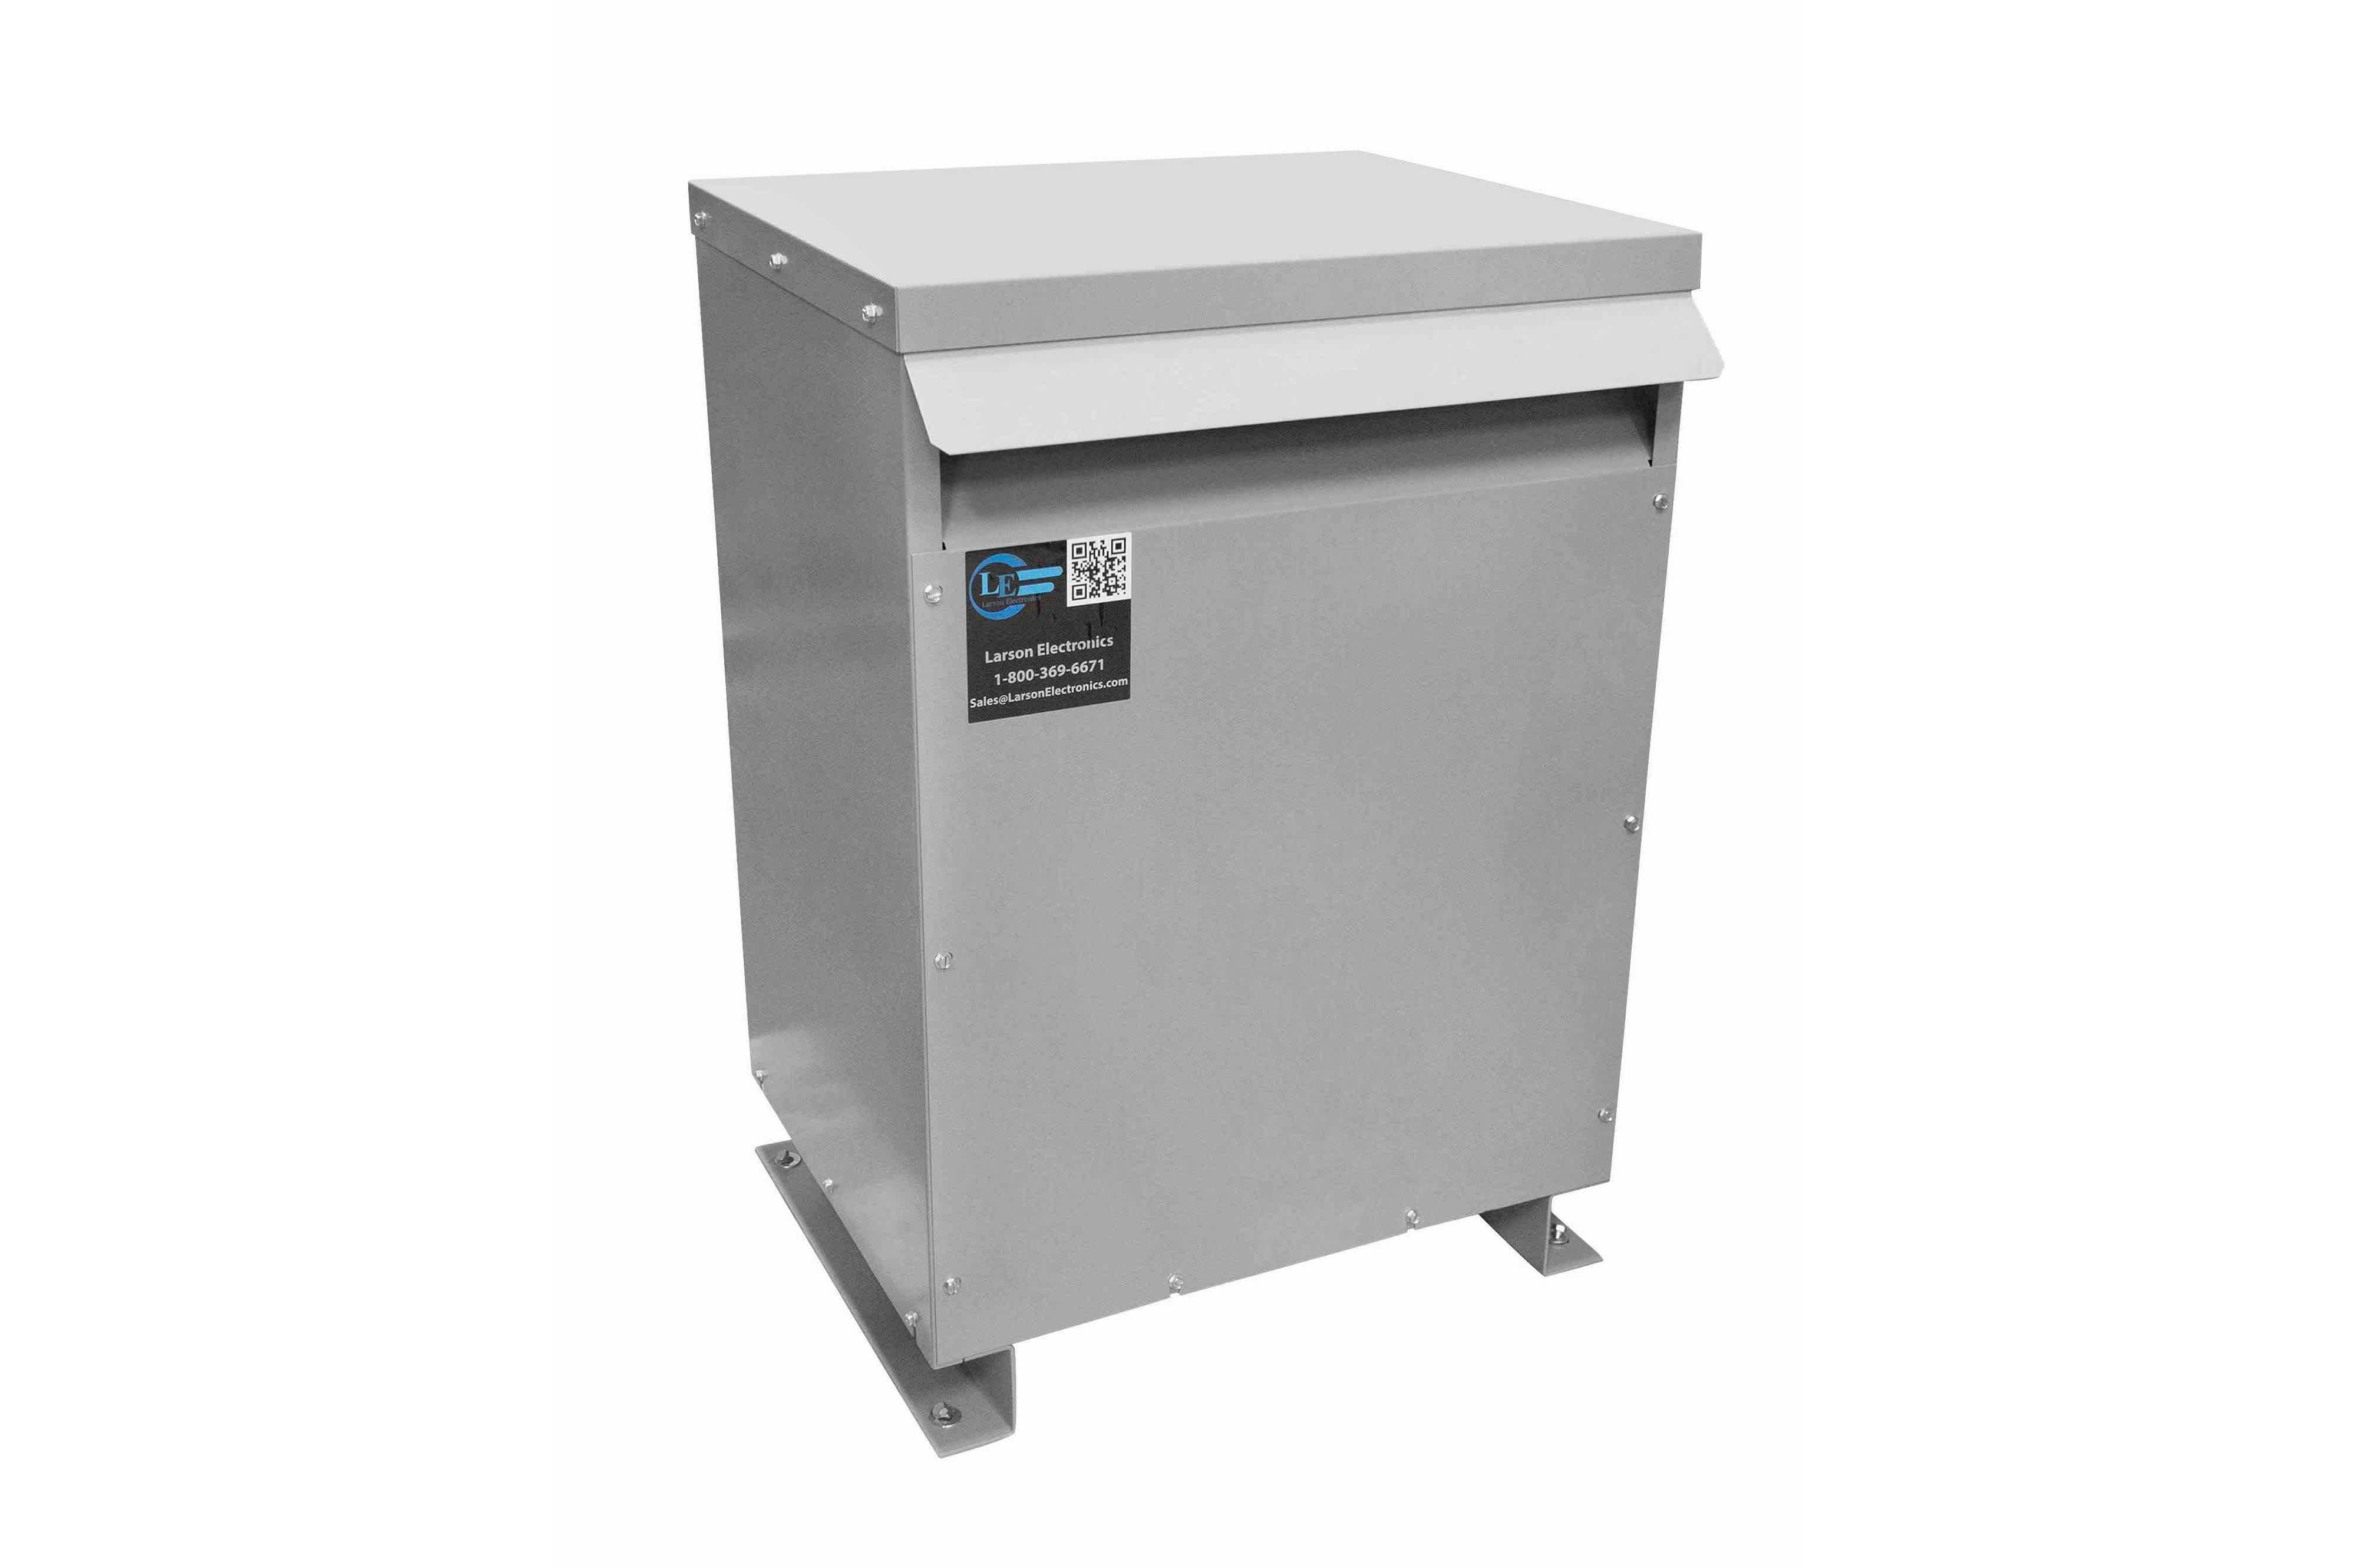 237.5 kVA 3PH Isolation Transformer, 575V Delta Primary, 480V Delta Secondary, N3R, Ventilated, 60 Hz